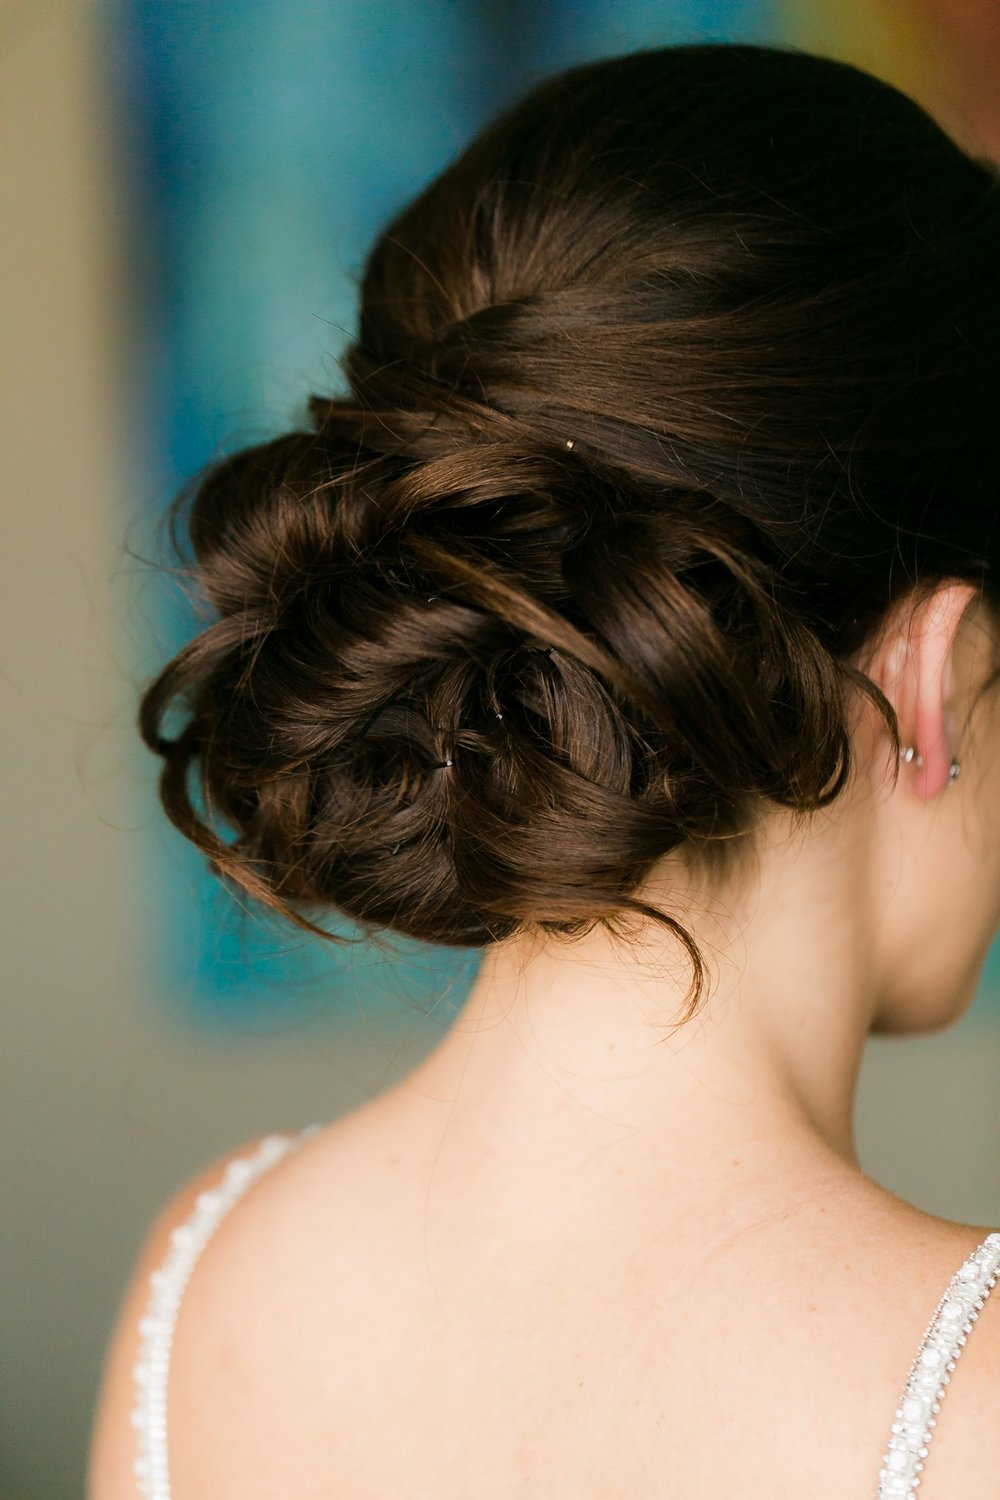 09-07-palm-springs-wedding-bridal-hair-and-makeup